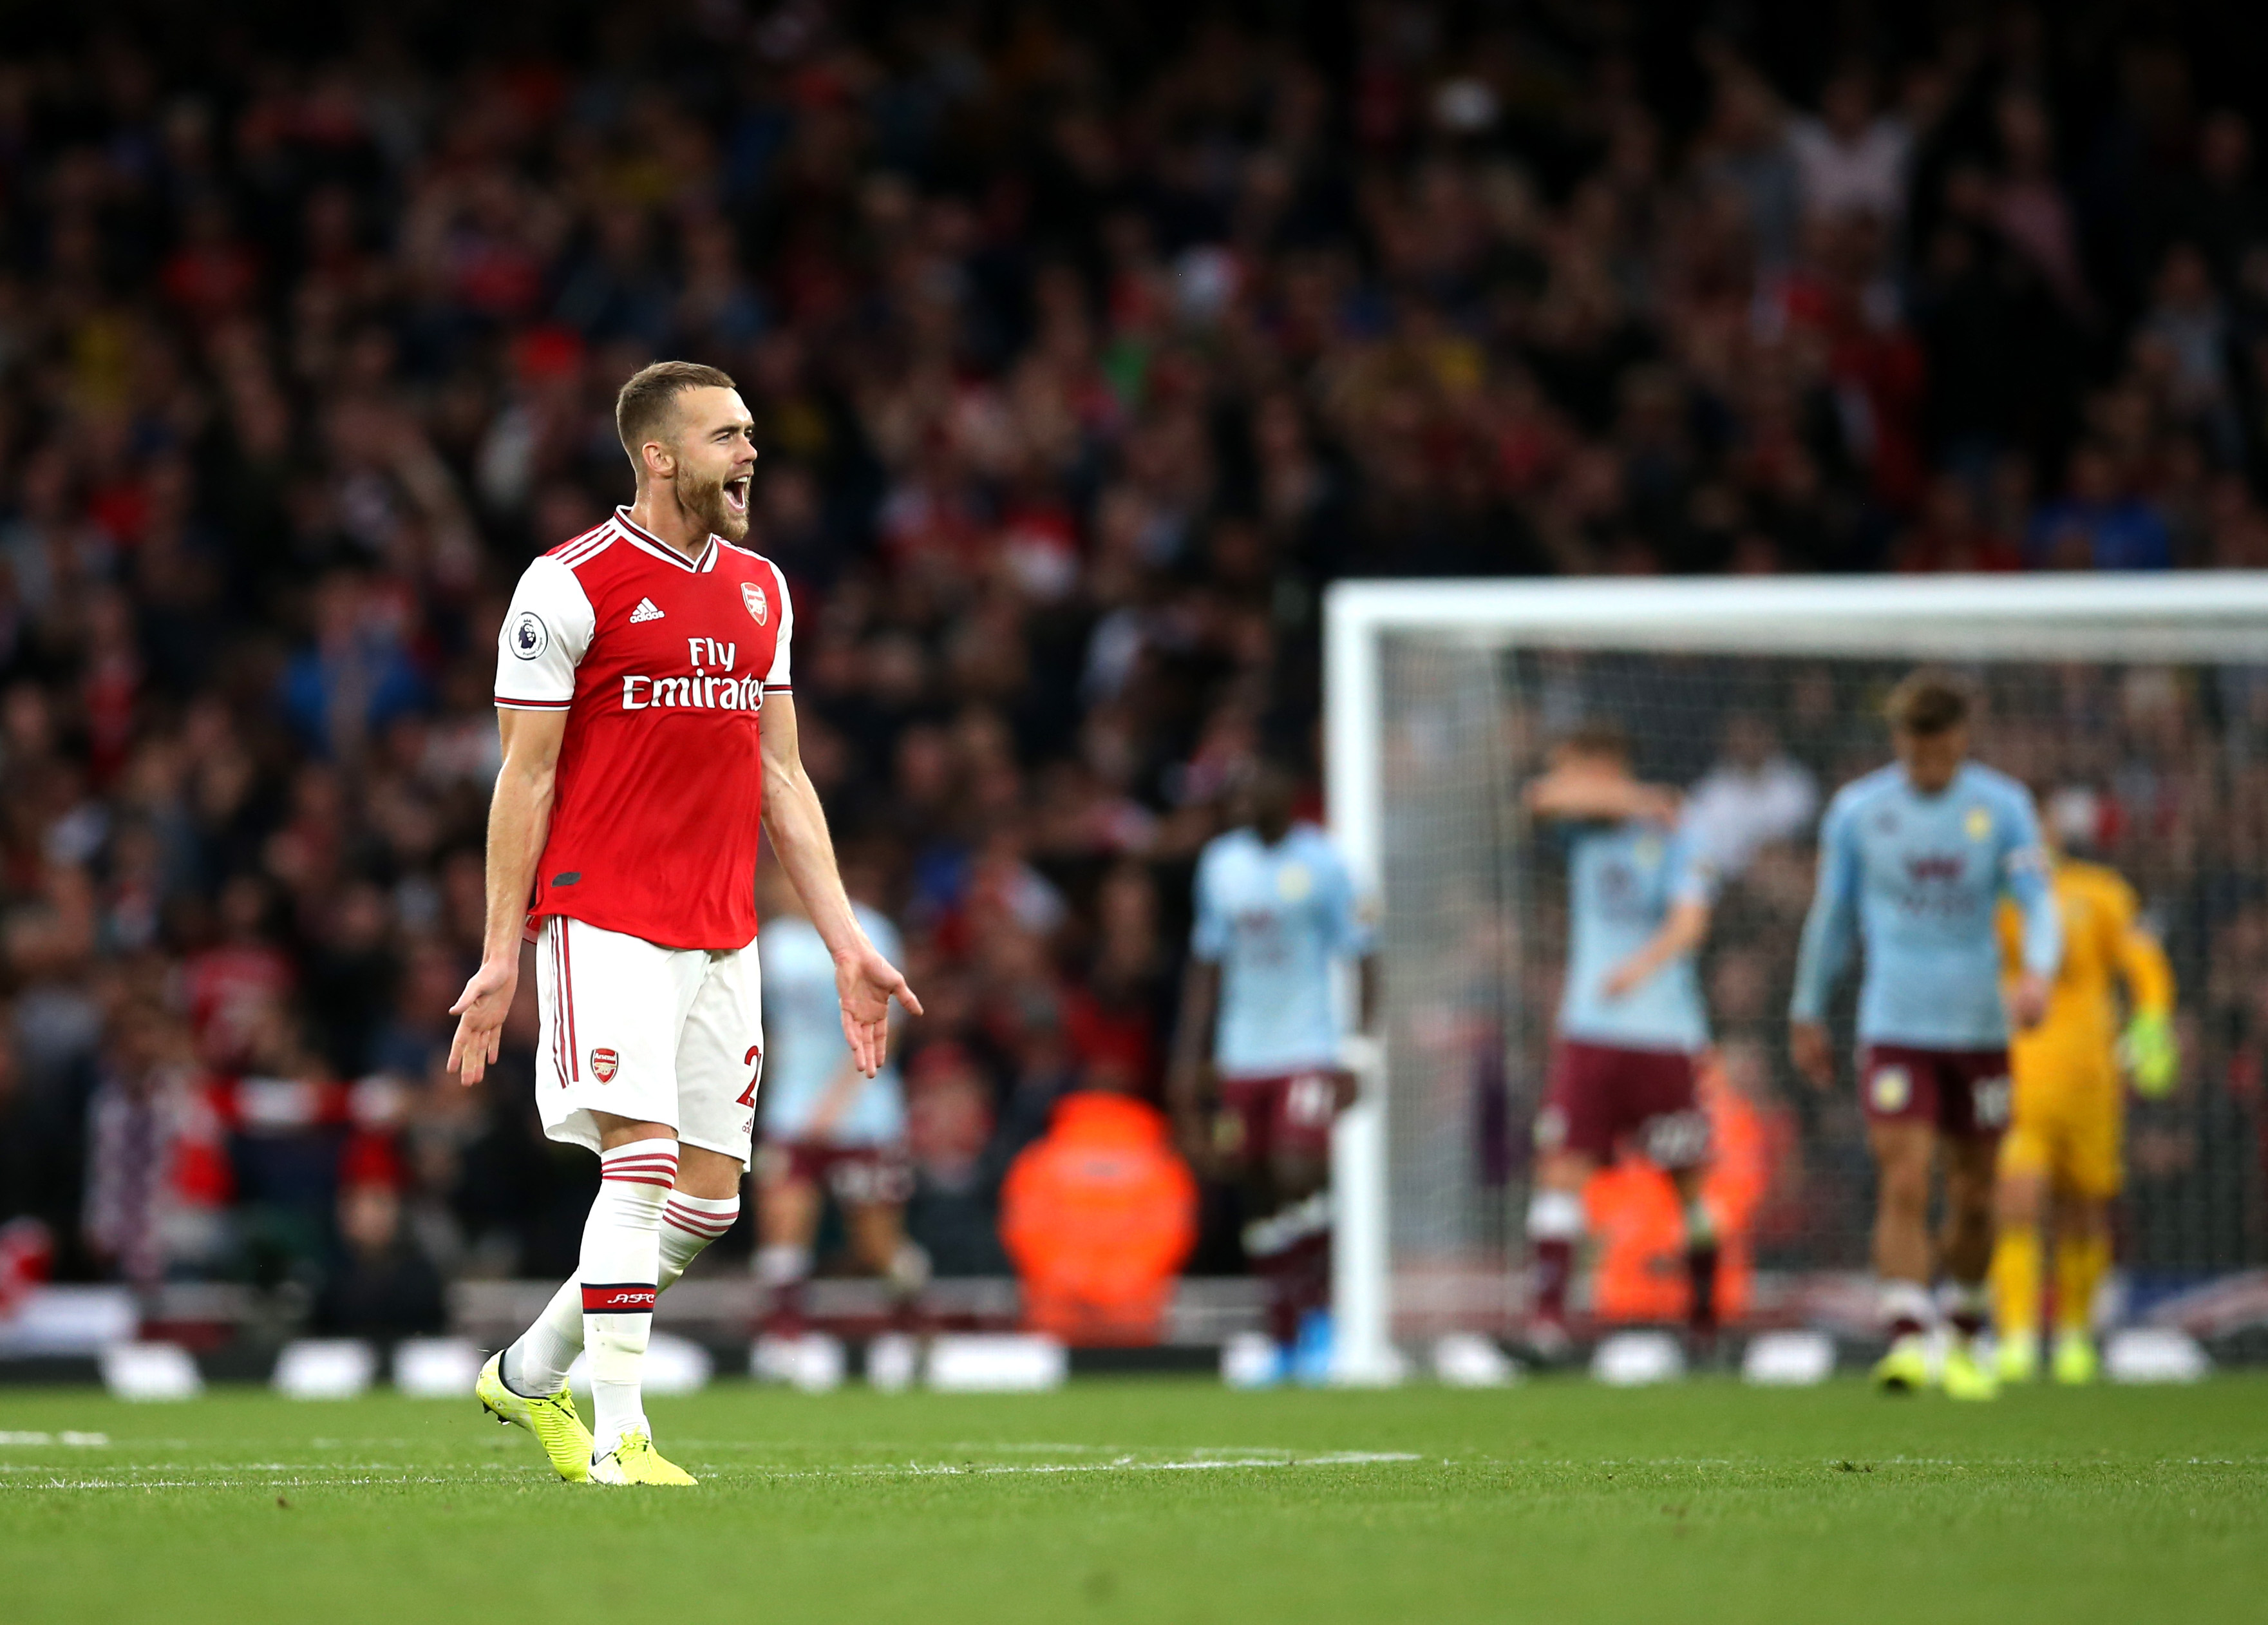 Leeds United are among clubs interested in Calum Chambers - A good option?